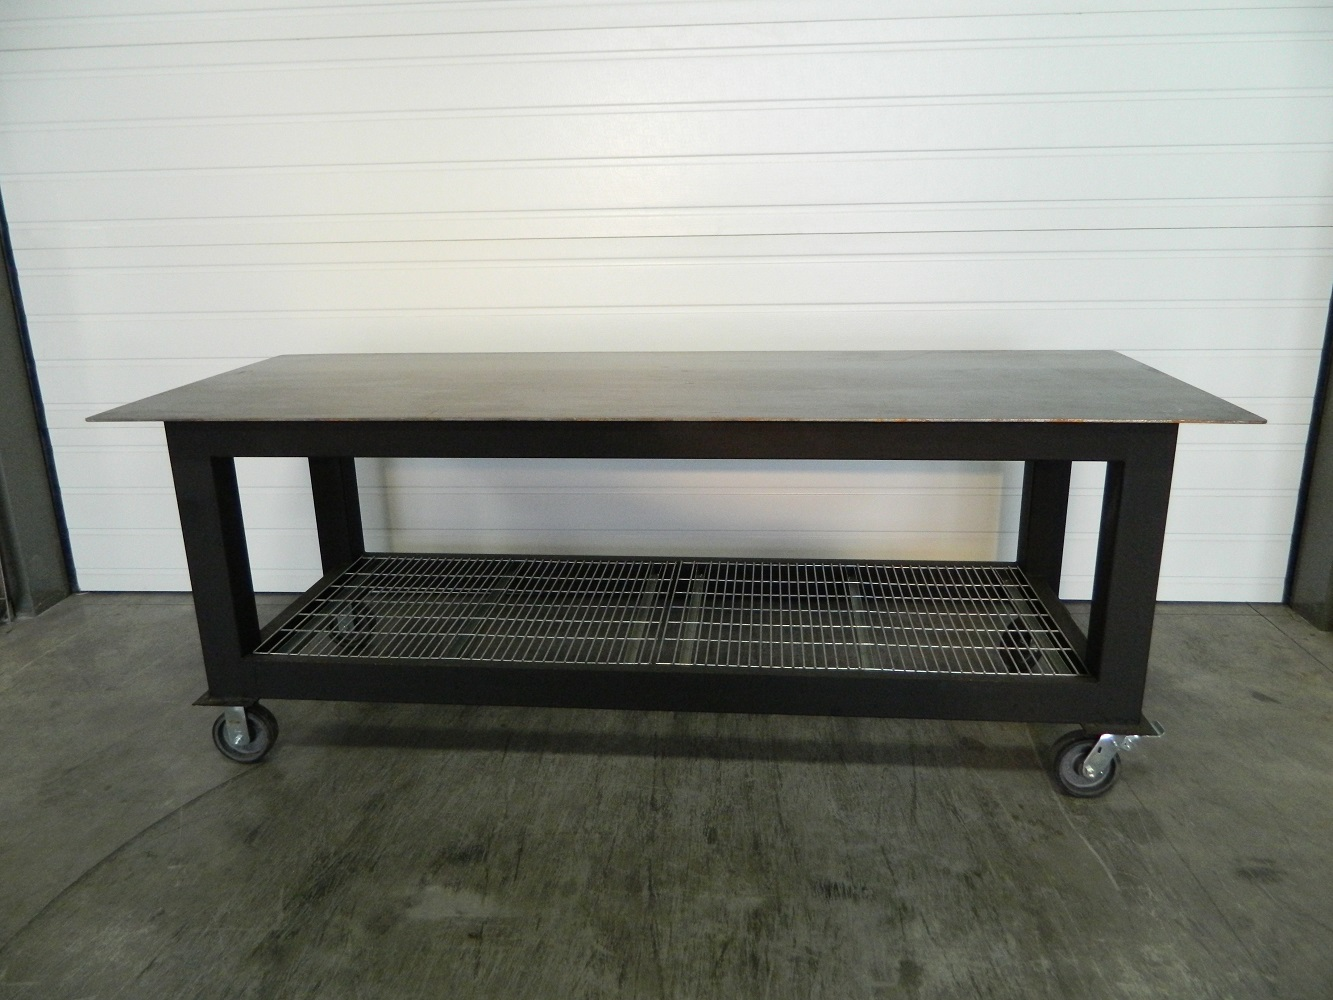 Welding Tables Amp Workbenches The Big Rack Shack The